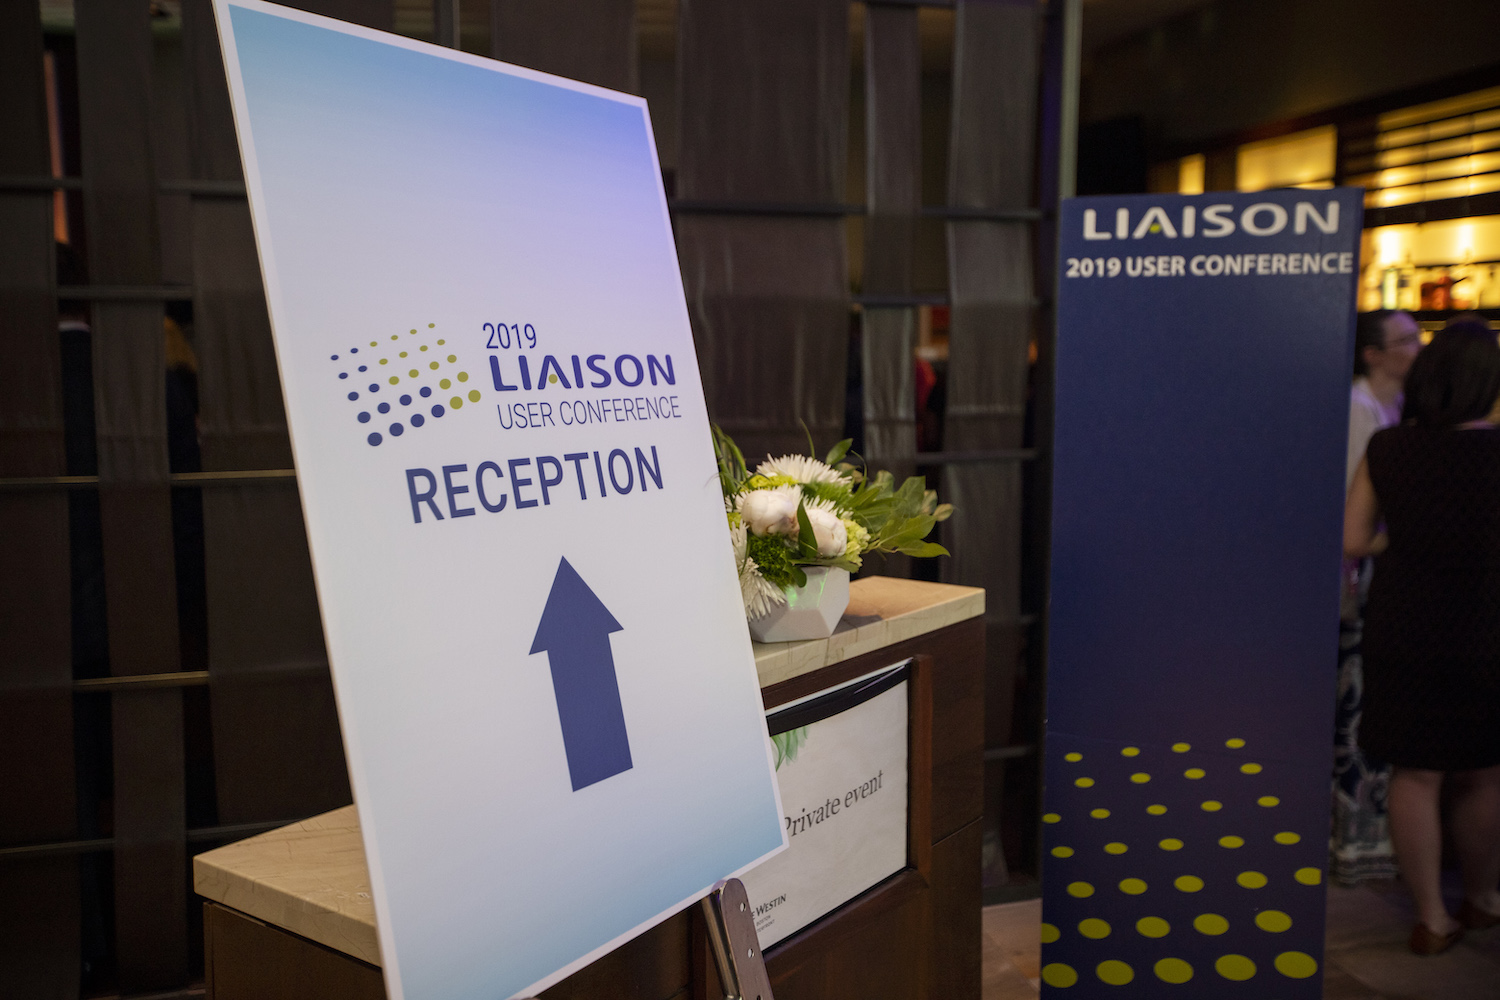 2019 Liaison User Conference